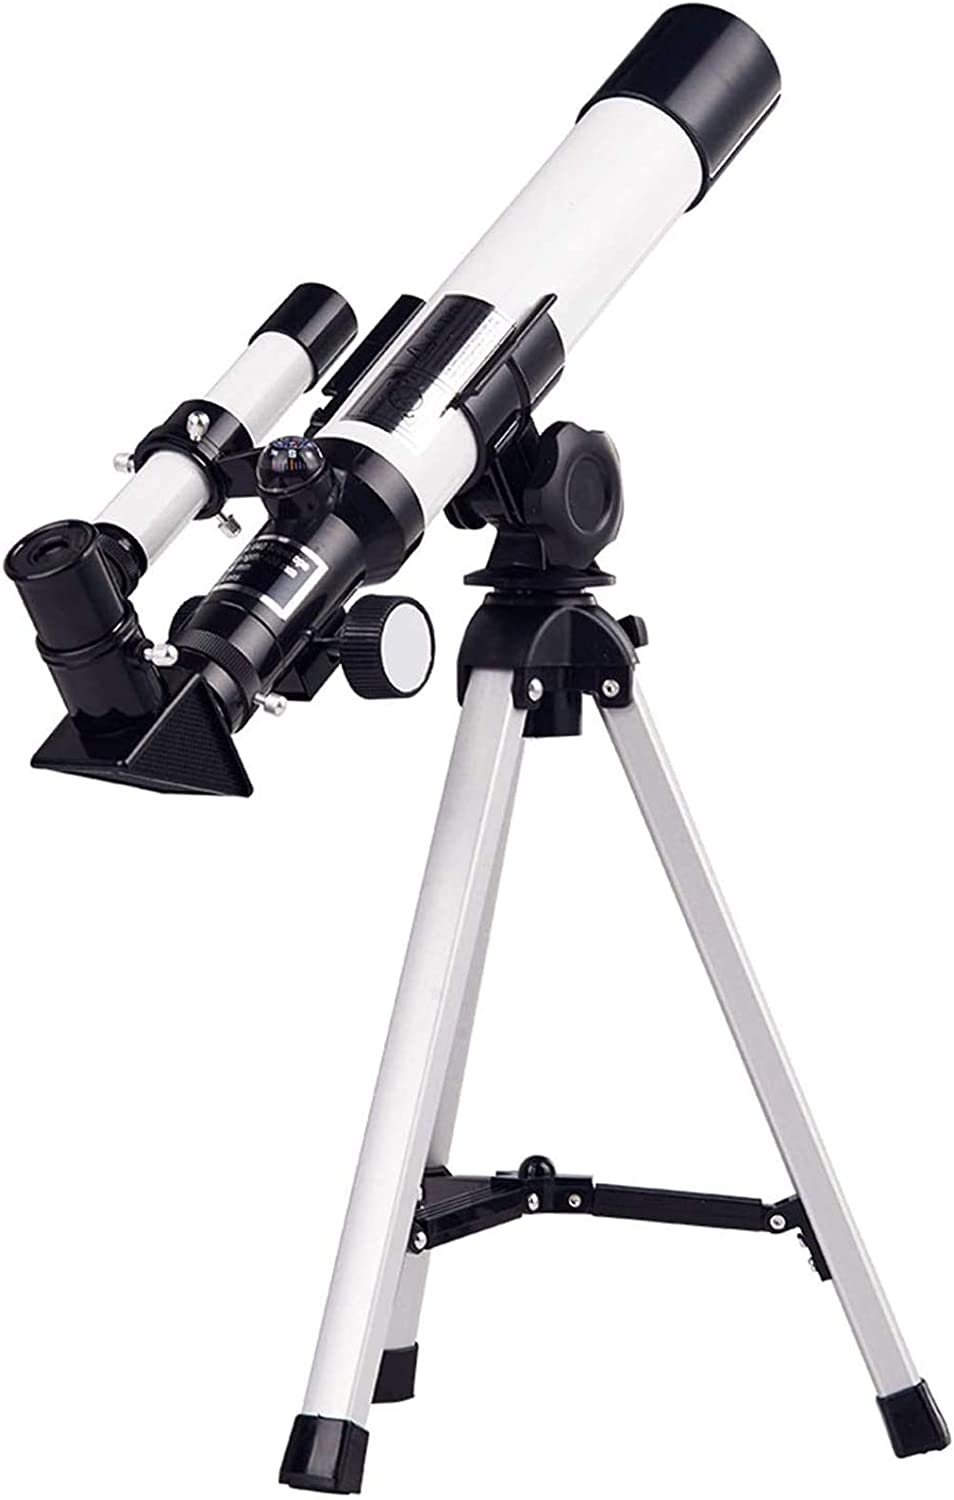 Astronomy Telescope for Kids Beginners,Telescopes for Adults Students Professional Stargazing High Magnification Astronomical Refracting Telescope-Travel Telescope W